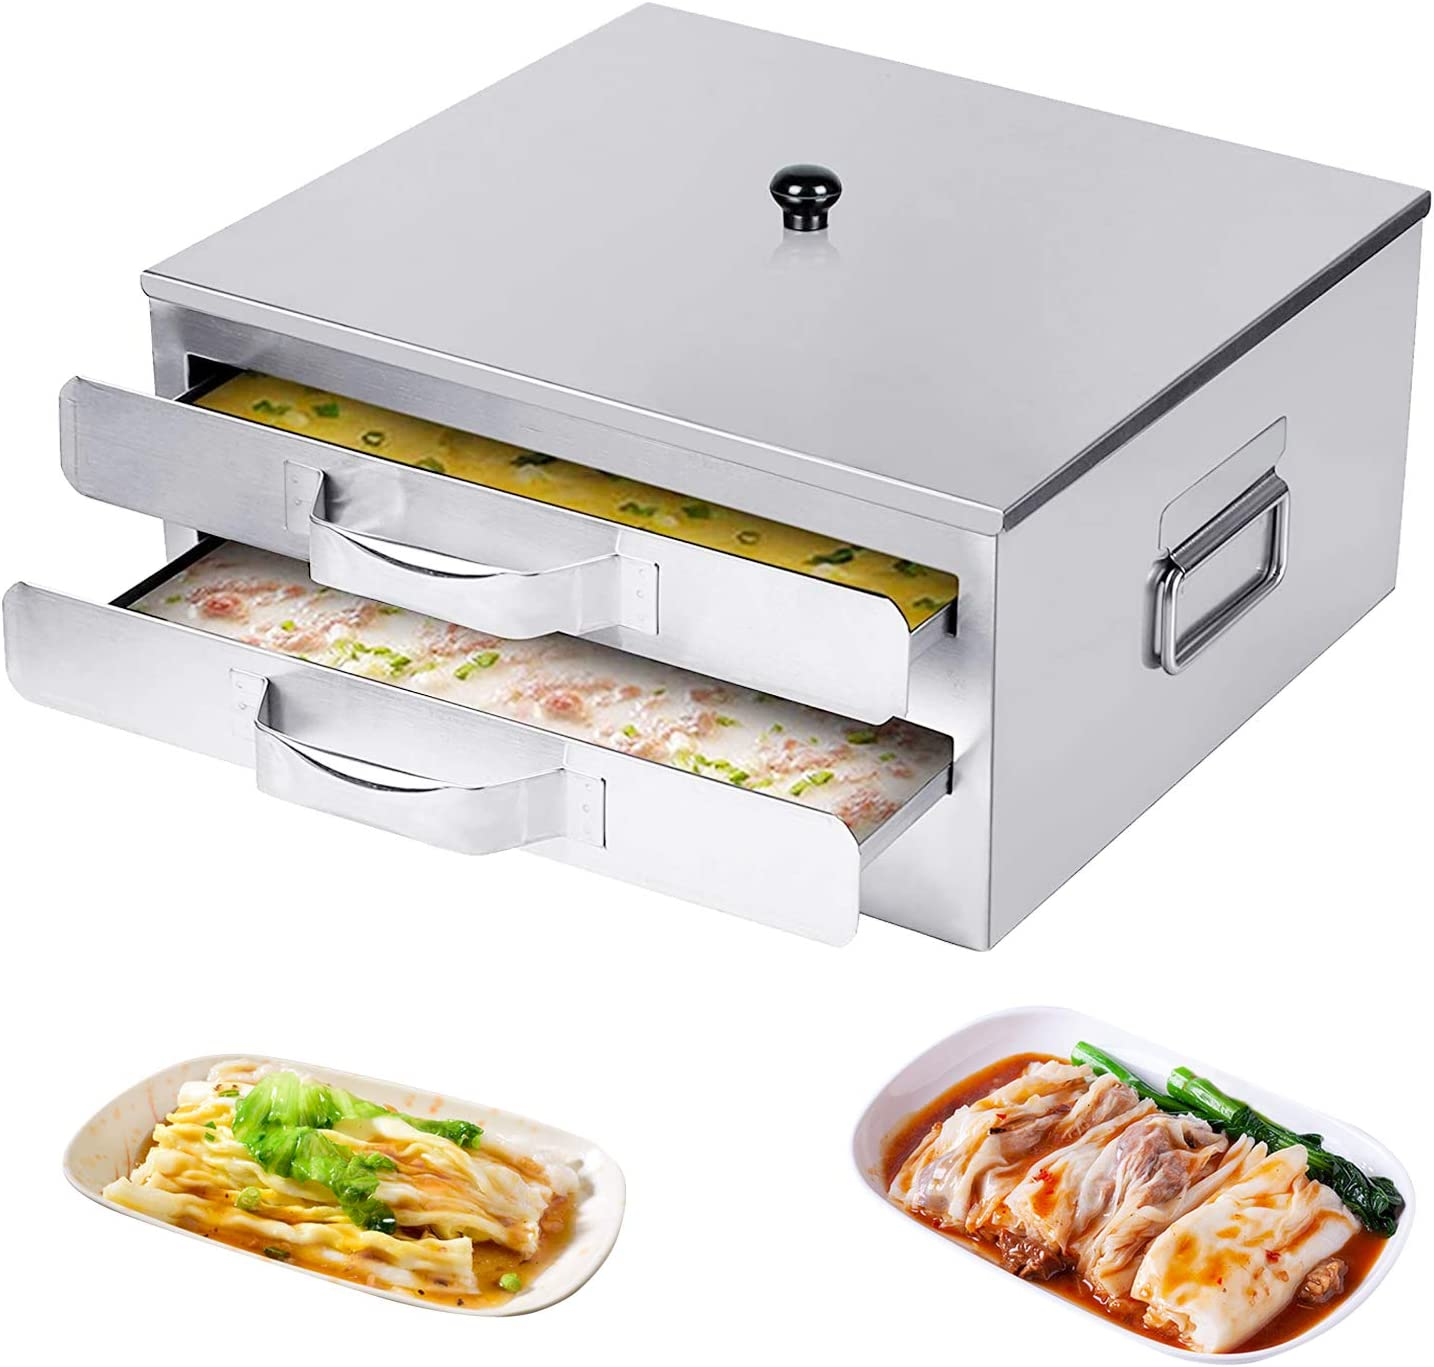 CABINAHOME Rice Noodle Roll Machine, Chinese Rice Noodle Roll Food Steamer with Openable Top Lid and 3 Stainless Steel Trays, for Home, Restaurant, Rice Roll Lovers